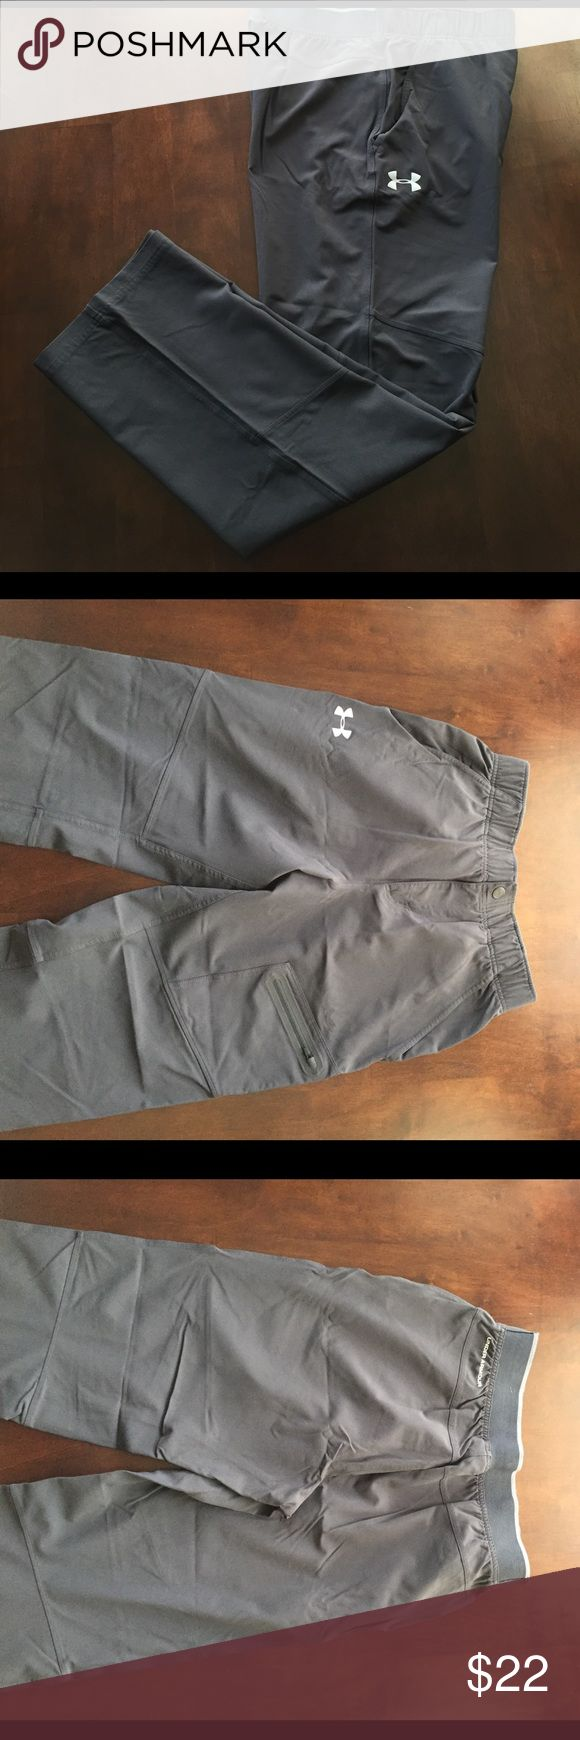 Men's Under Armour gym pants Men's Under Armour stretchy gym pants.  Have pockets and elastic waistband.  Zipper and snap in front.  Have 2 very small pulls in the fabric on the front of the pants, one on the right leg thigh and the other by the fly.  These can be seen in the last two photos with dime for scale.  90% nylon, 10% elastane. Under Armour Pants Sweatpants & Joggers